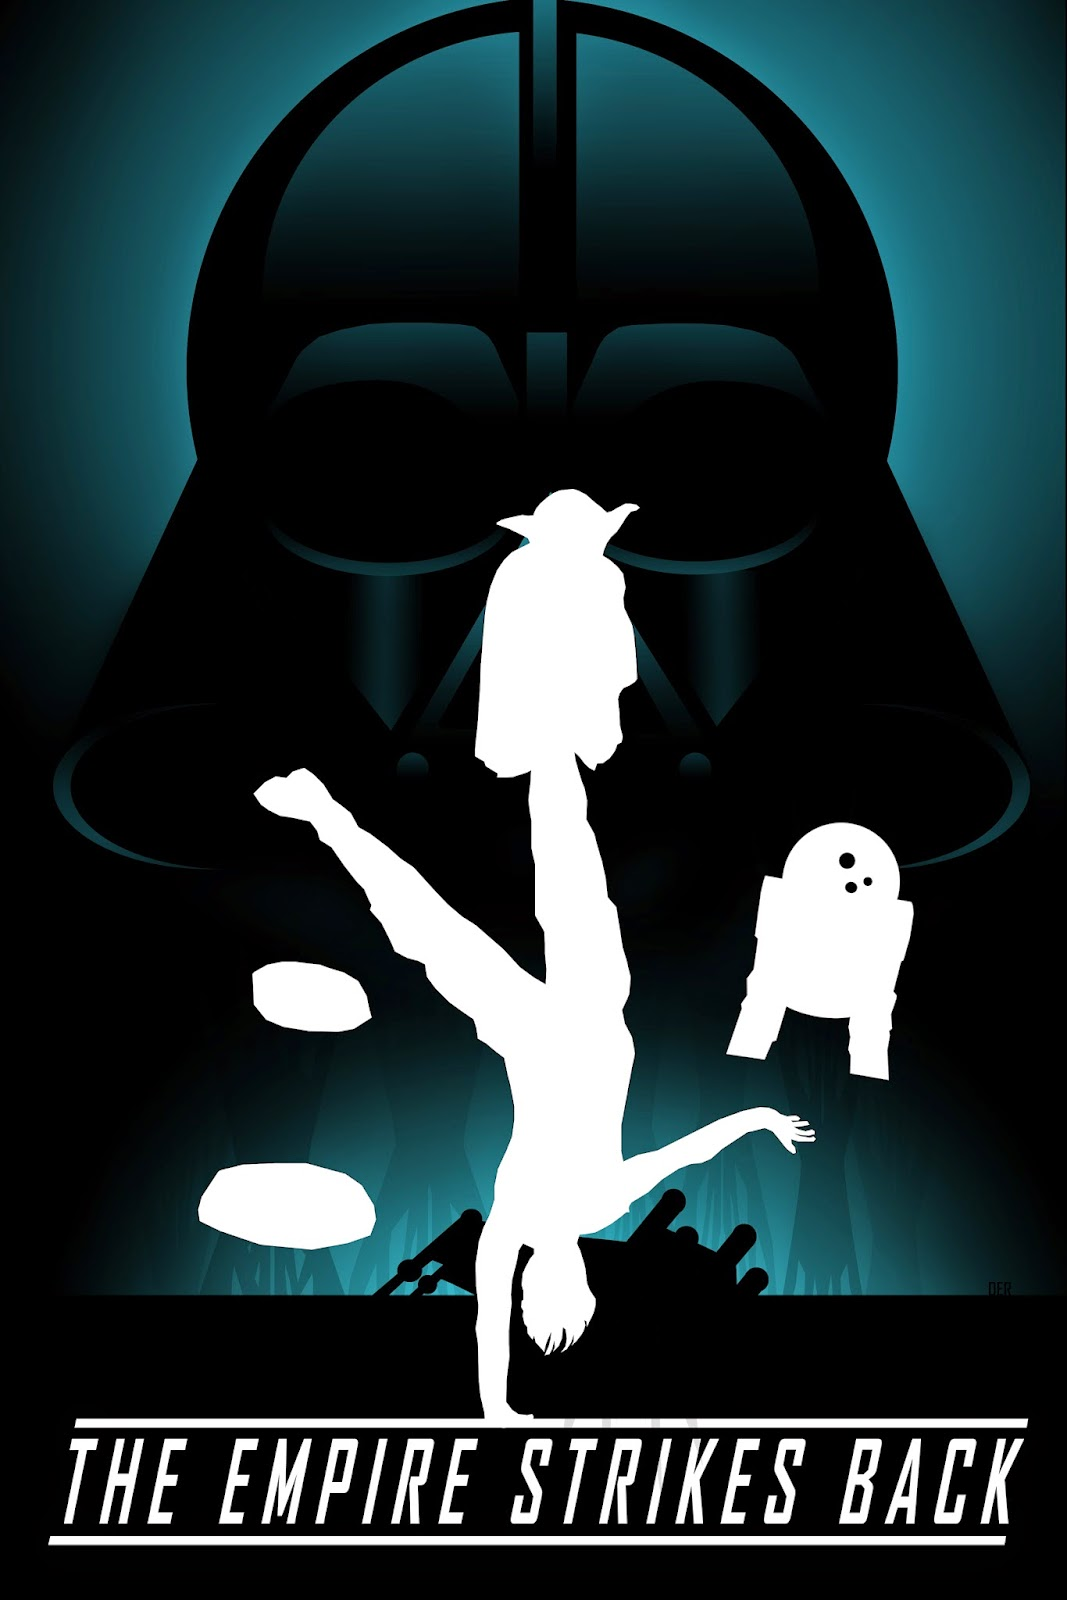 Movie poster design for Star Wars The Empire Strikes Back by Darian Robbins